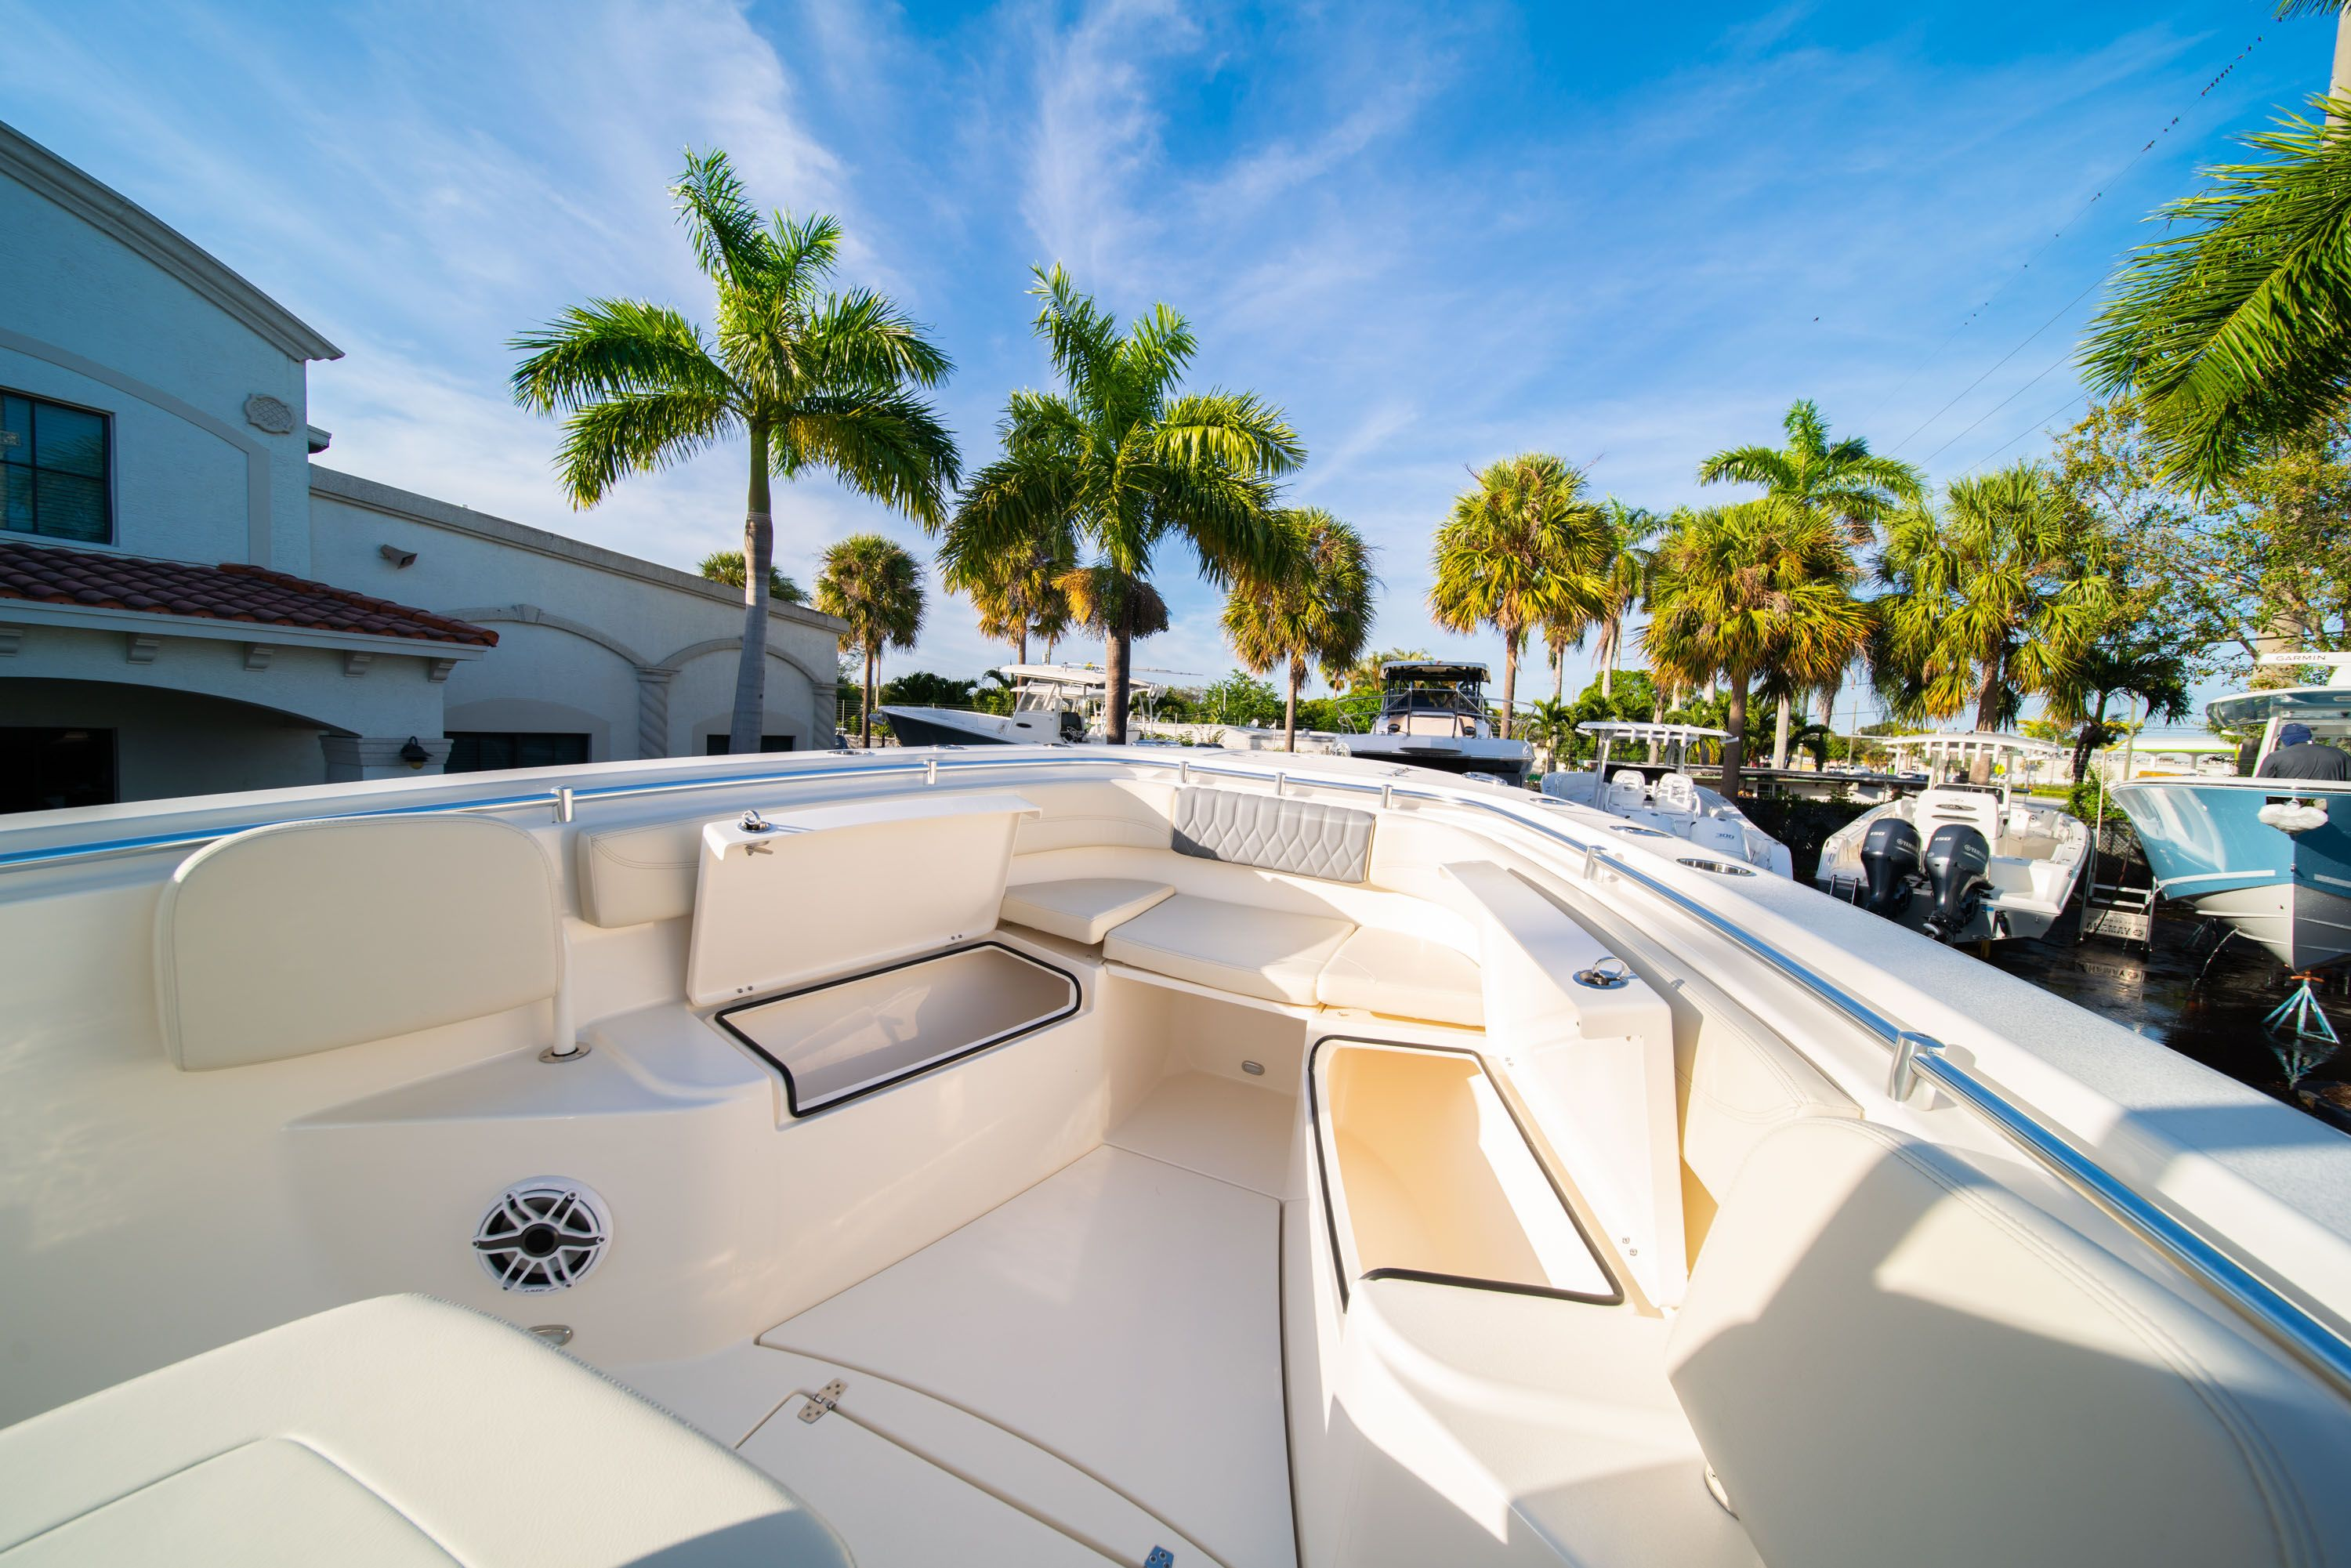 Thumbnail 39 for New 2020 Cobia 280 CC Center Console boat for sale in West Palm Beach, FL